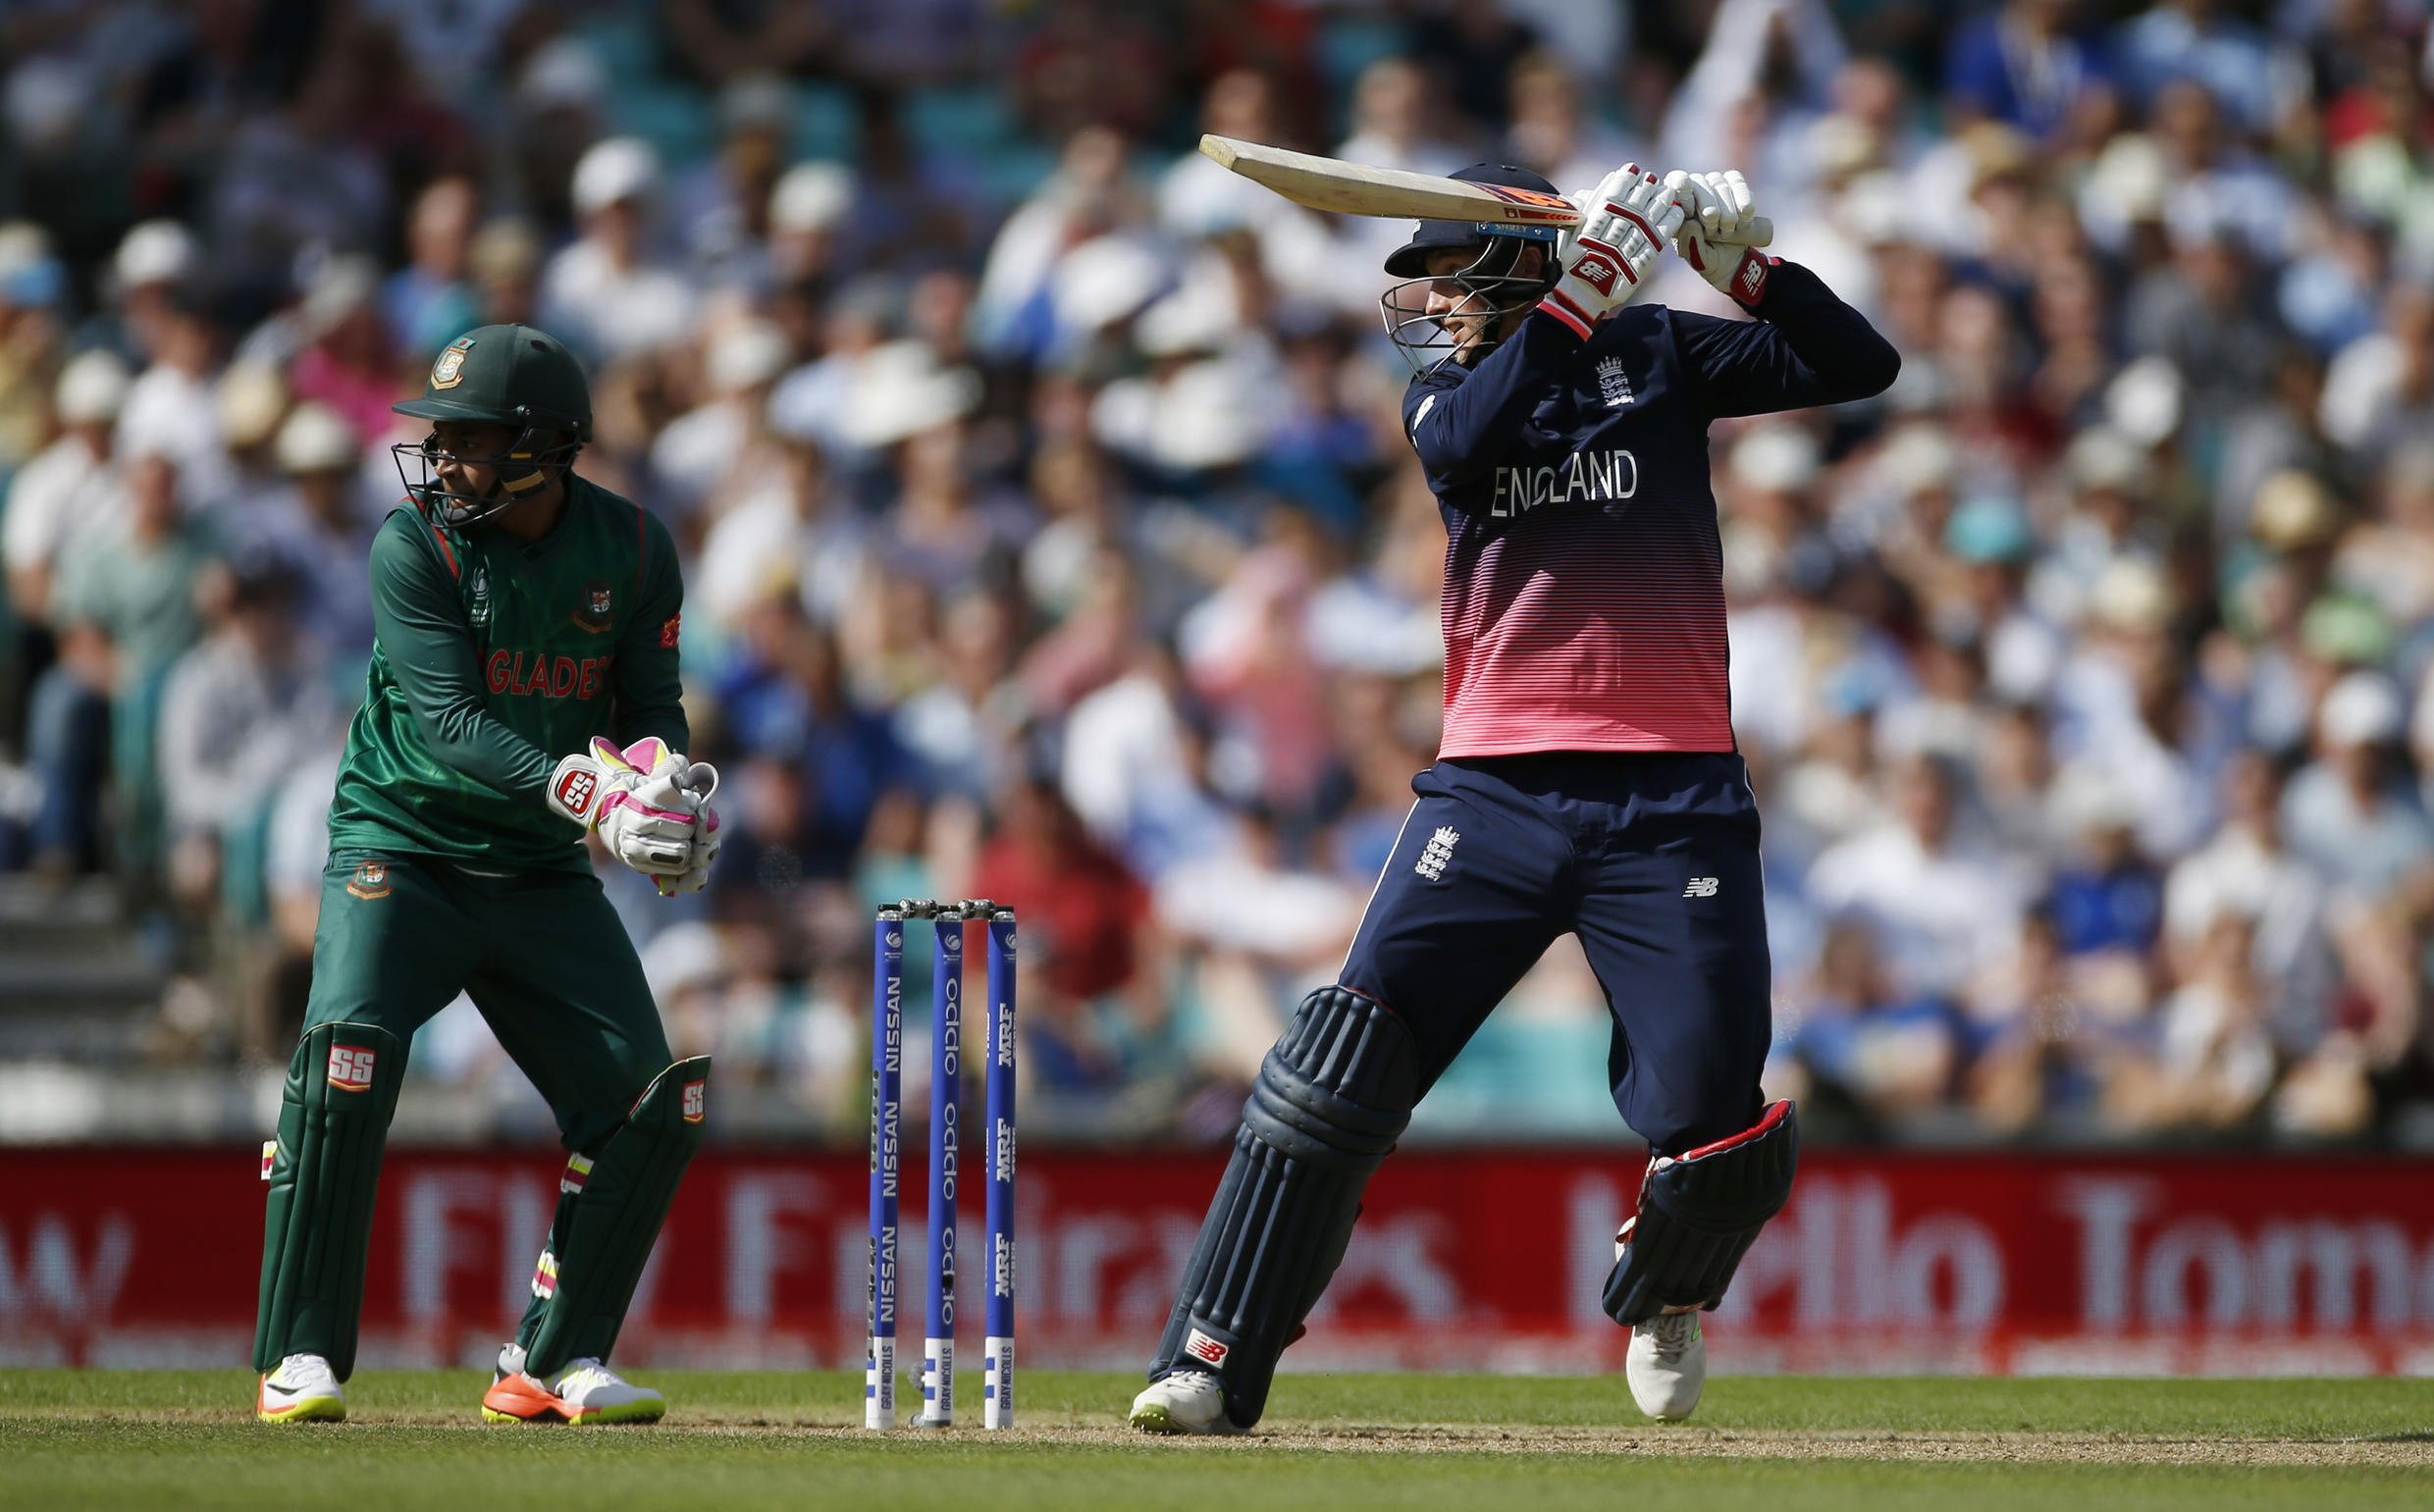 England's Joe Root in action at 2017 ICC Champions Trophy